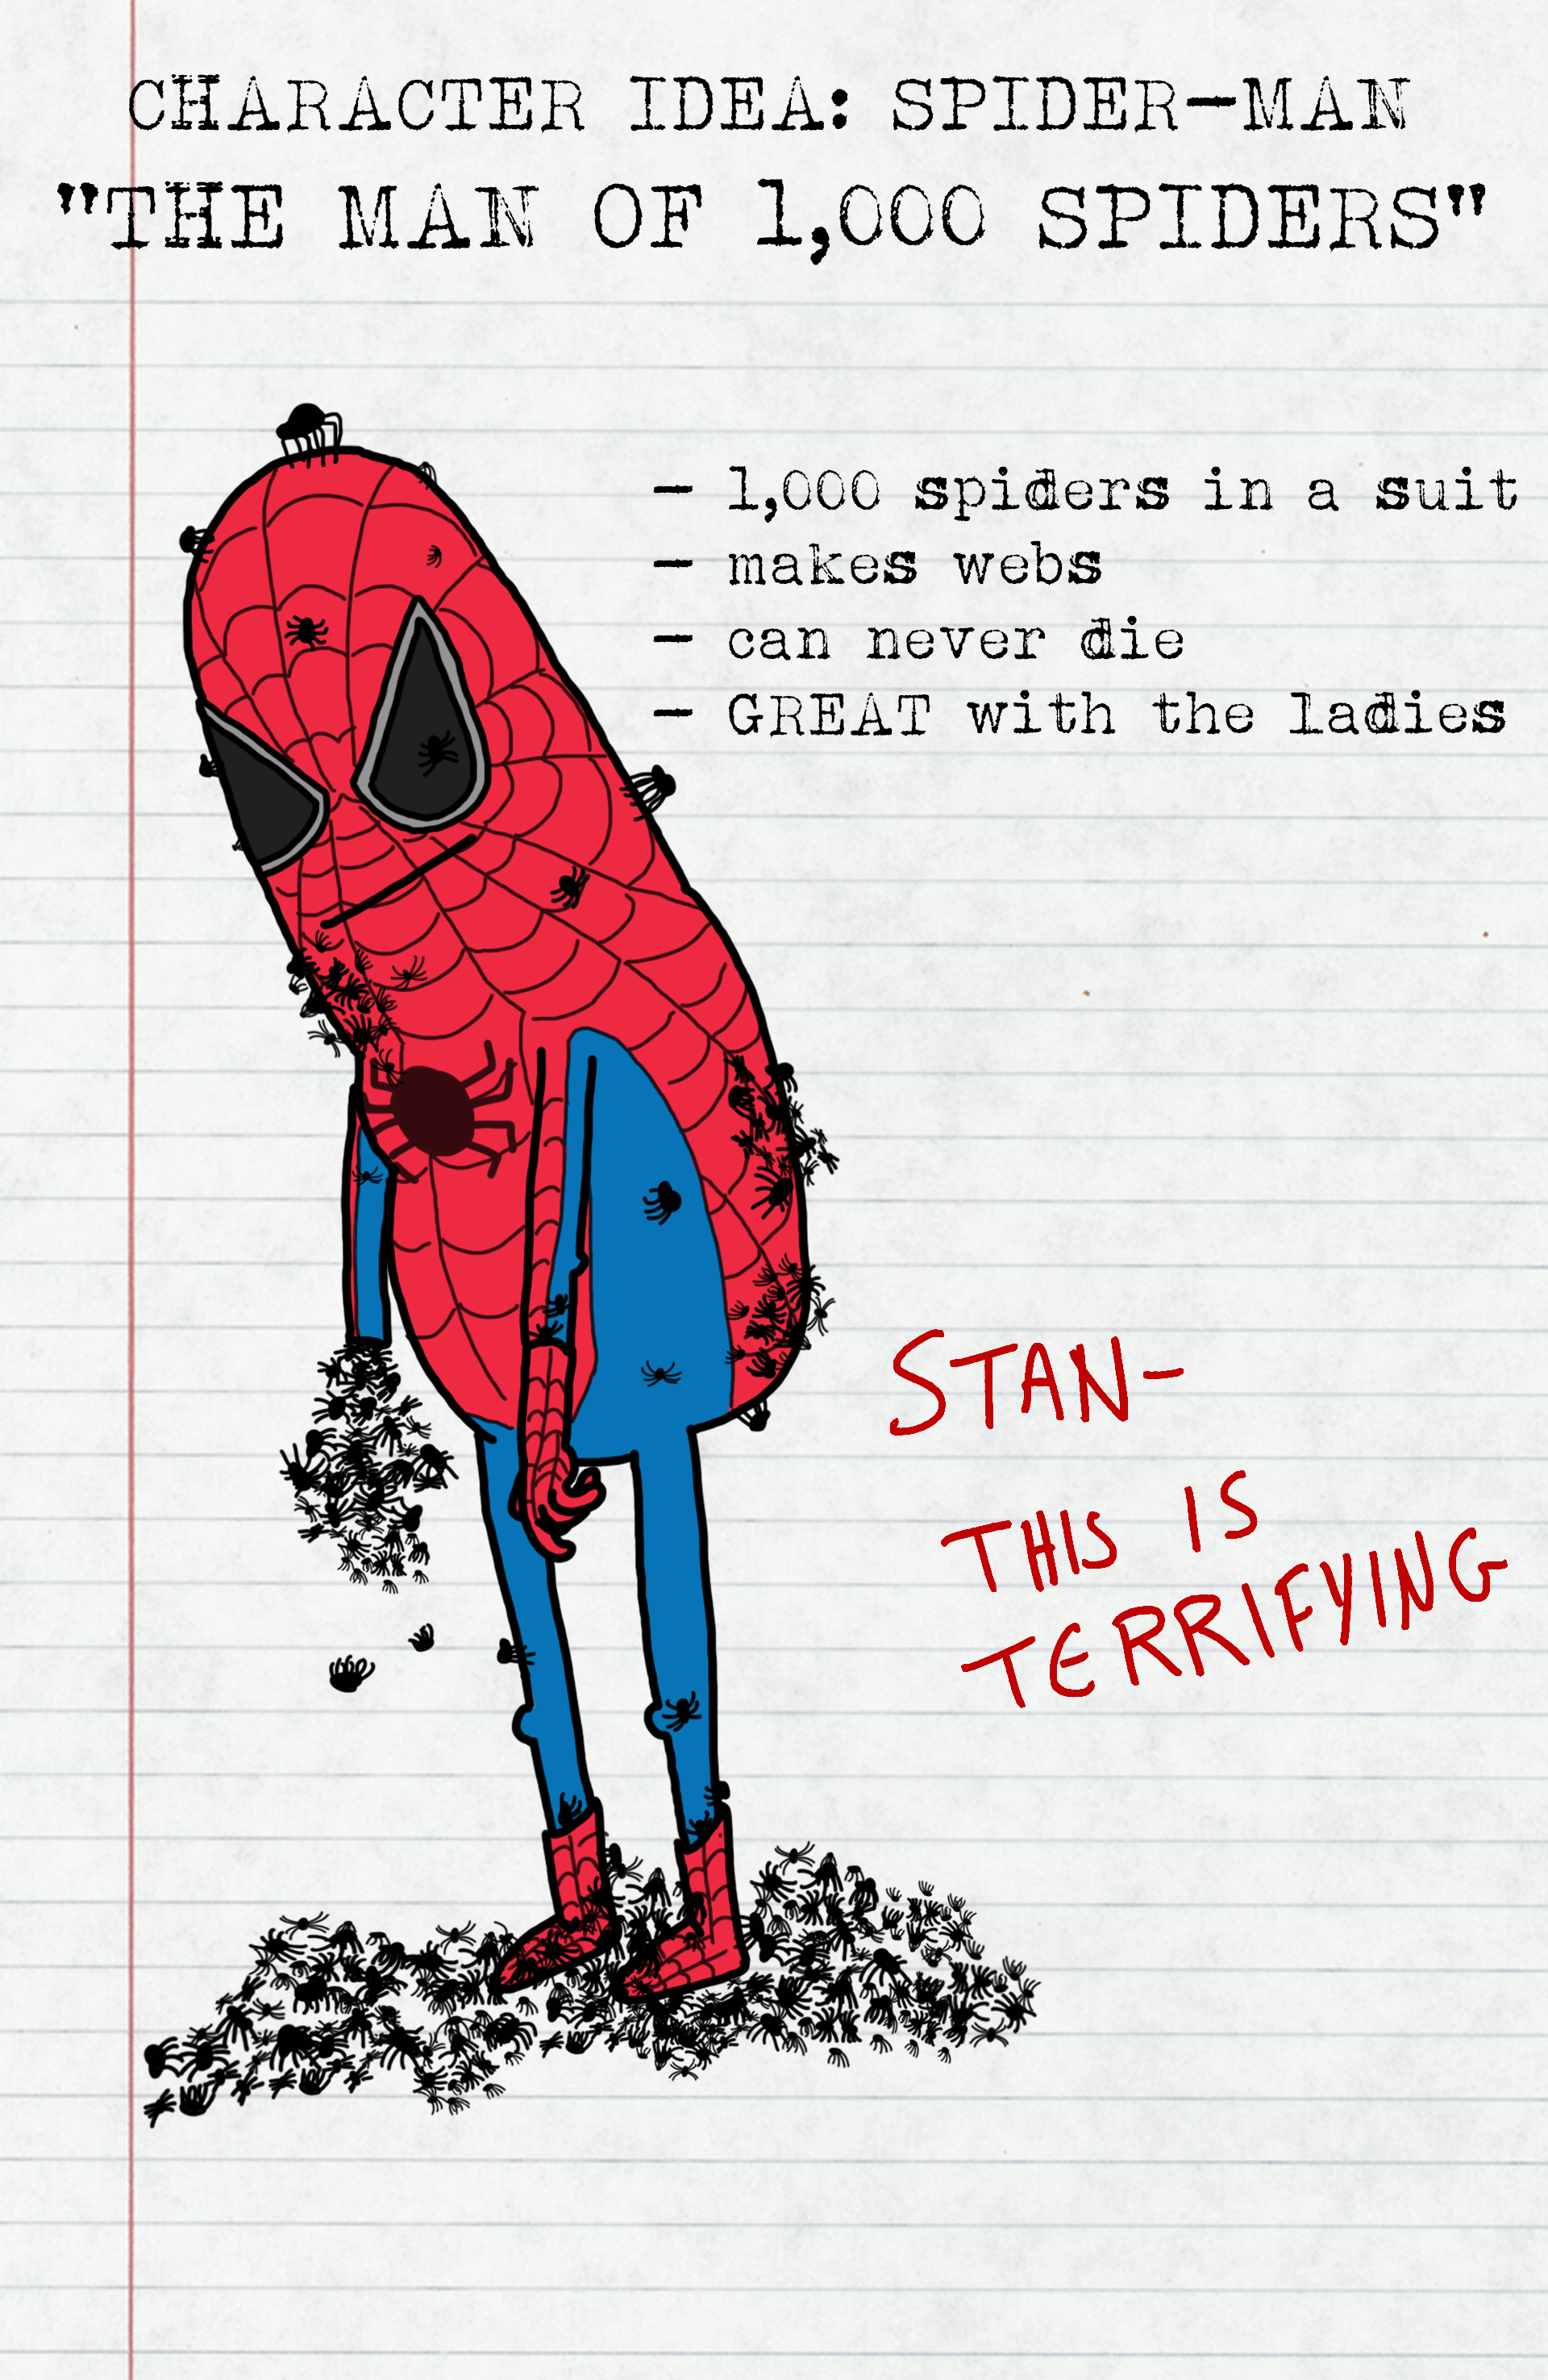 Character spider man.jpg